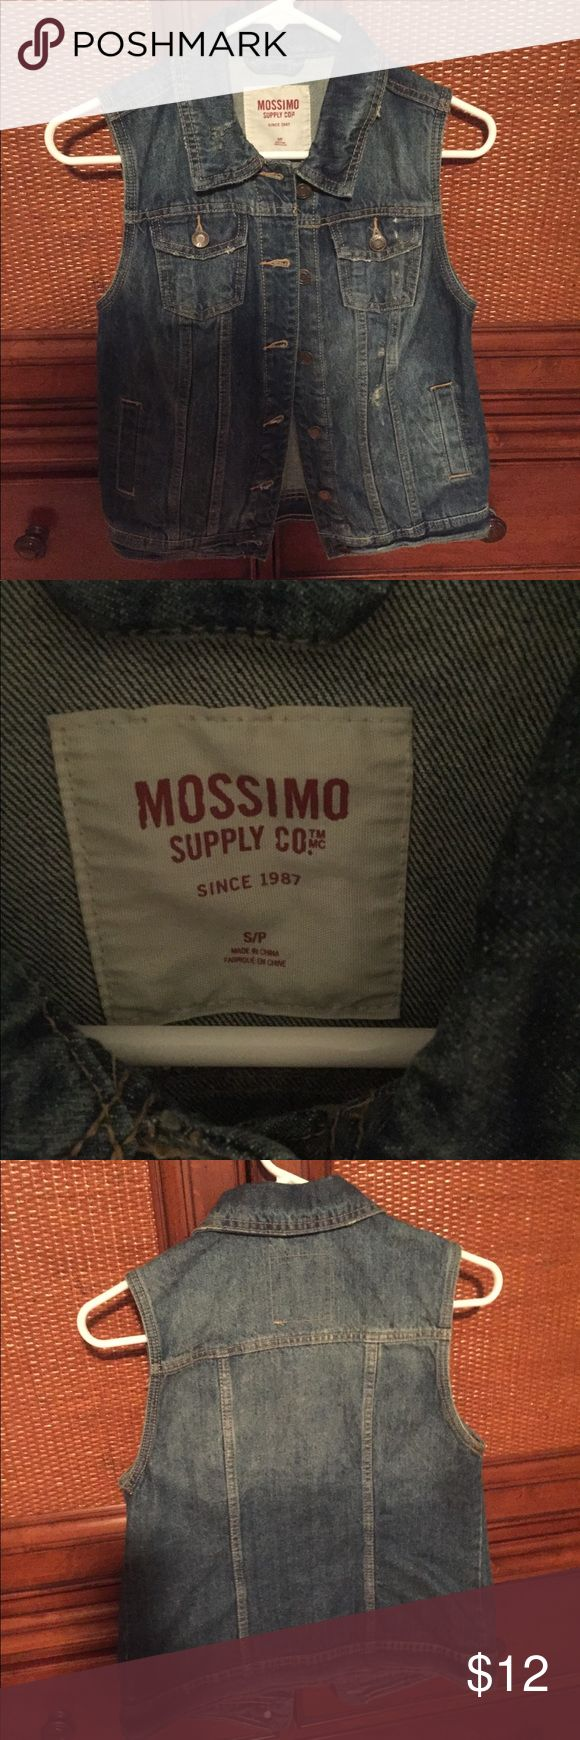 Mossimo Sleeveless Jean Jacket Never worn! Size Small Mossimo Supply Co Jackets & Coats Jean Jackets